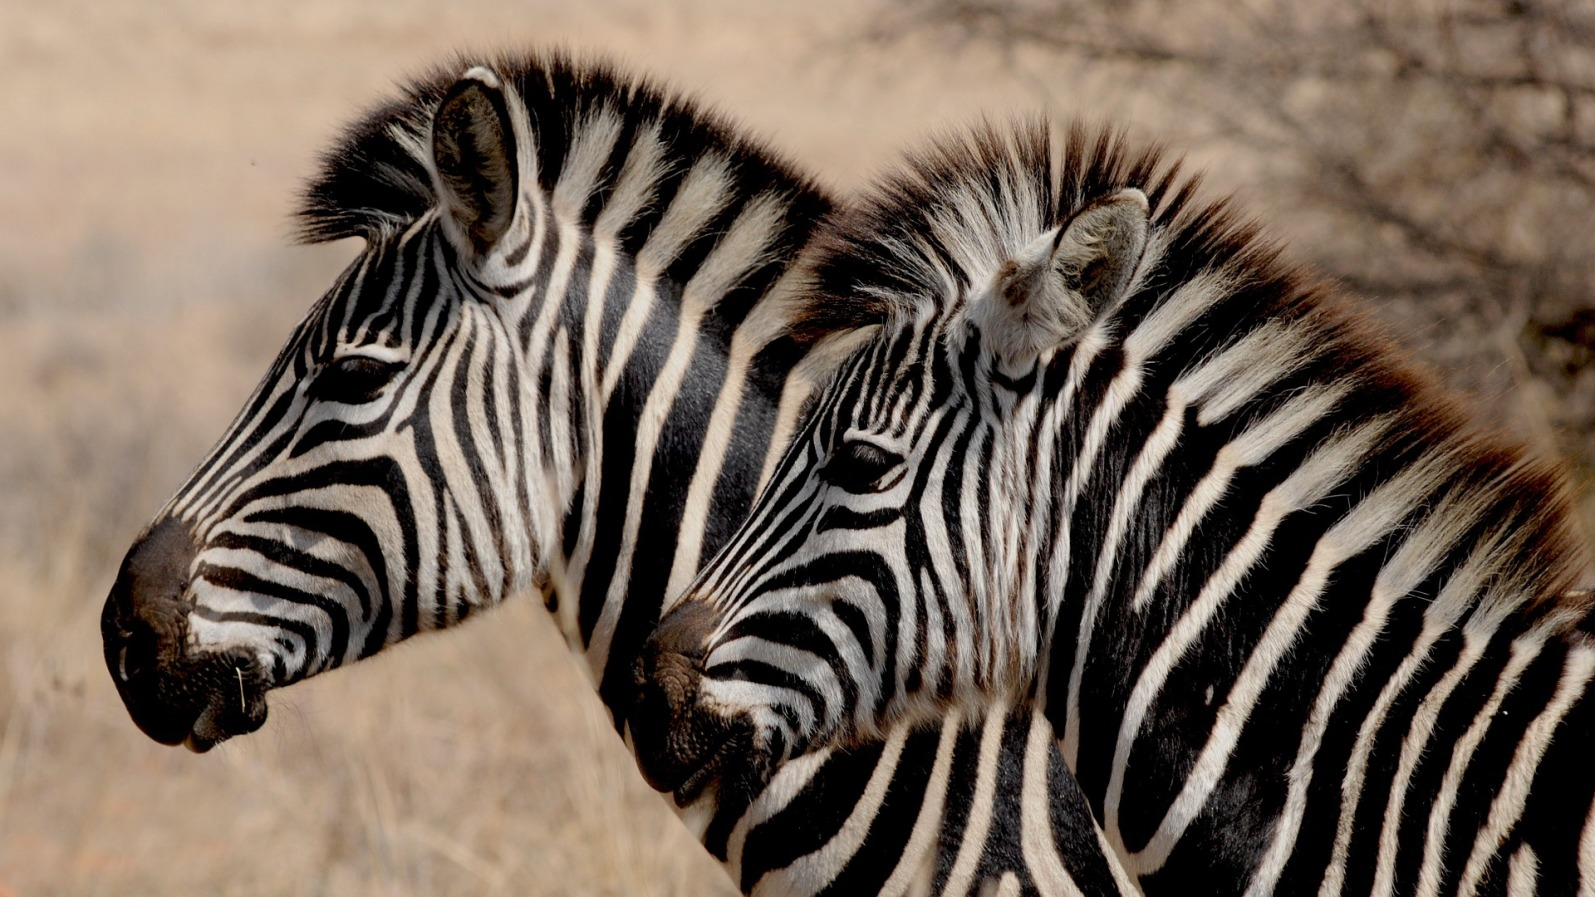 Zebras in Savanna - Original image